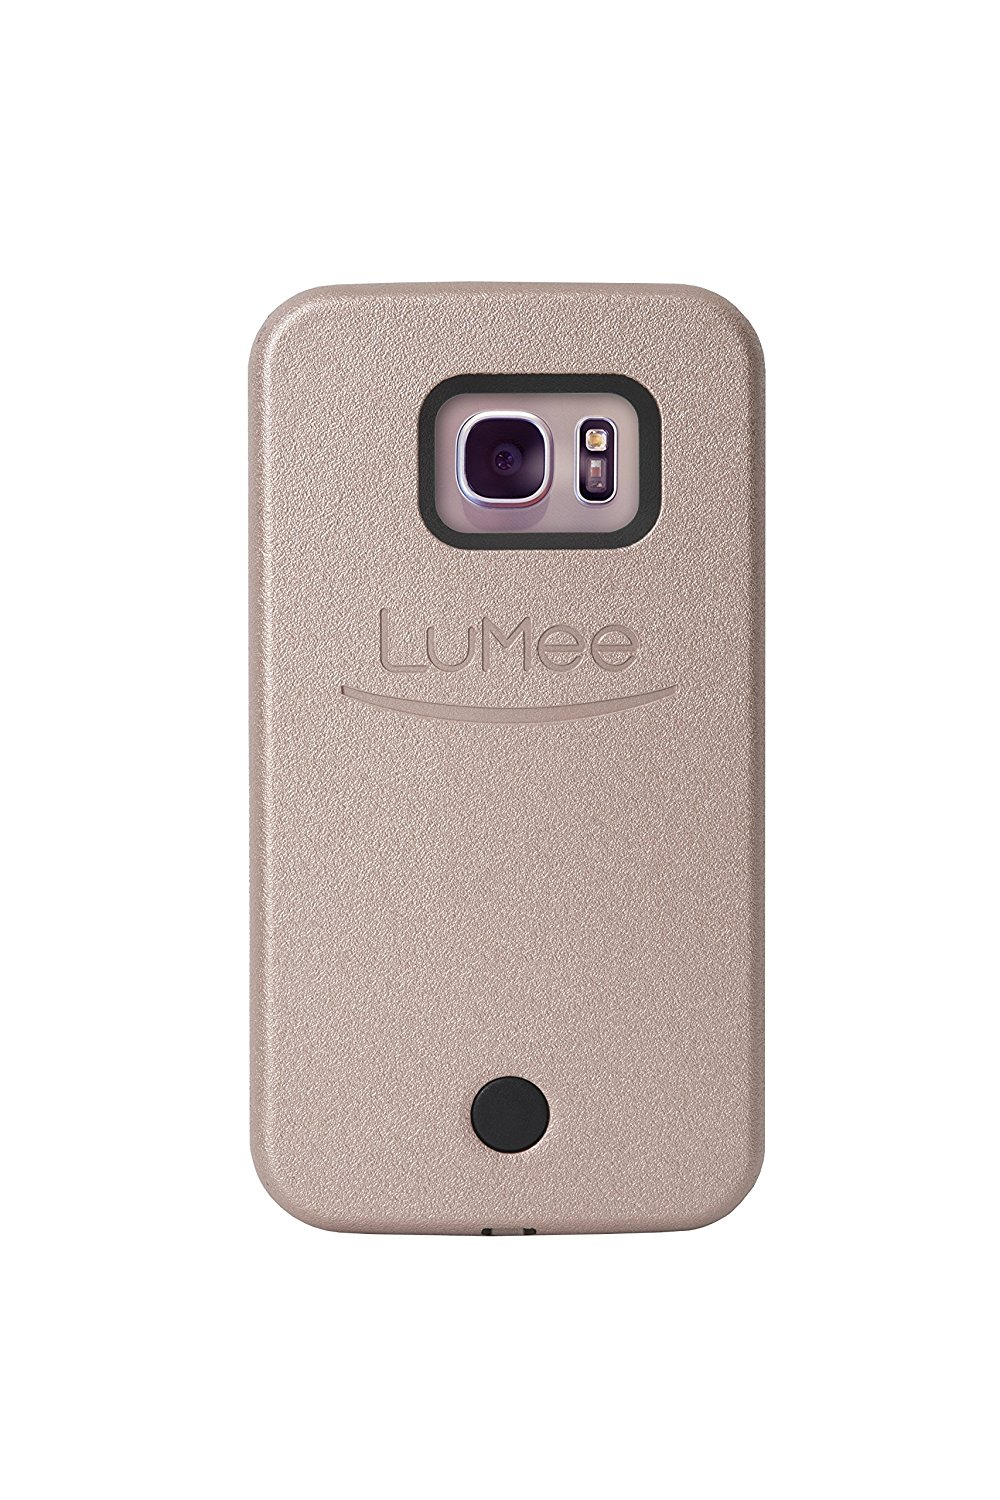 buy online 48f0e 766d0 Cheap Wholesale Lumee Case, find Wholesale Lumee Case deals on line ...